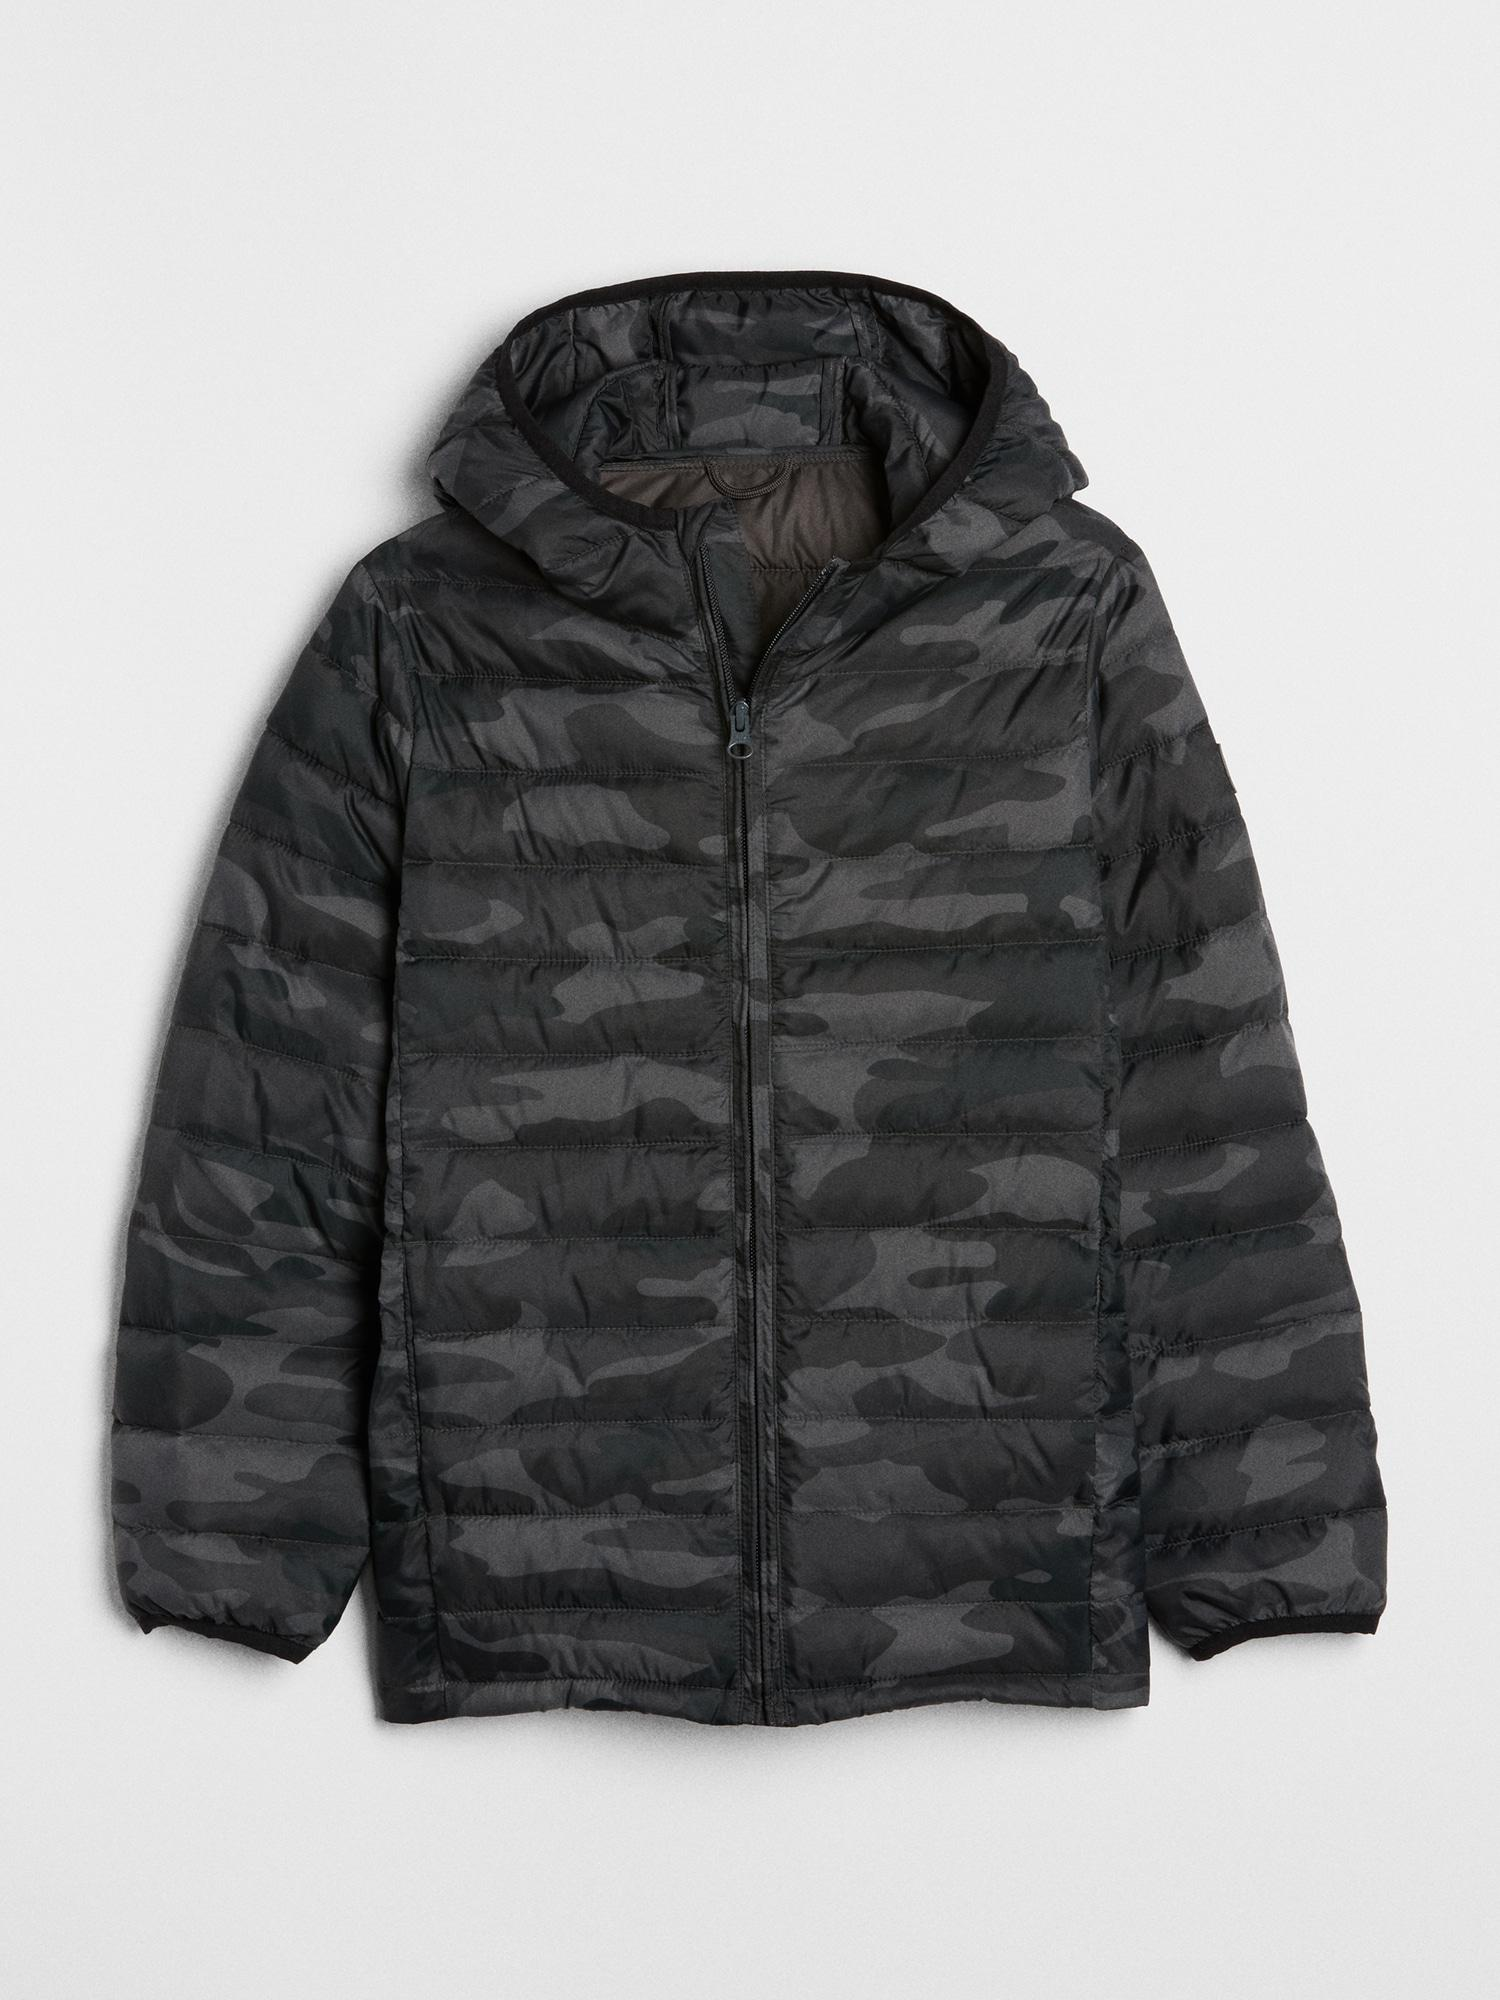 cf5928f1b Lyst - Gap Coldcontrol Lightweight Camo Puffer Jacket in Black for Men